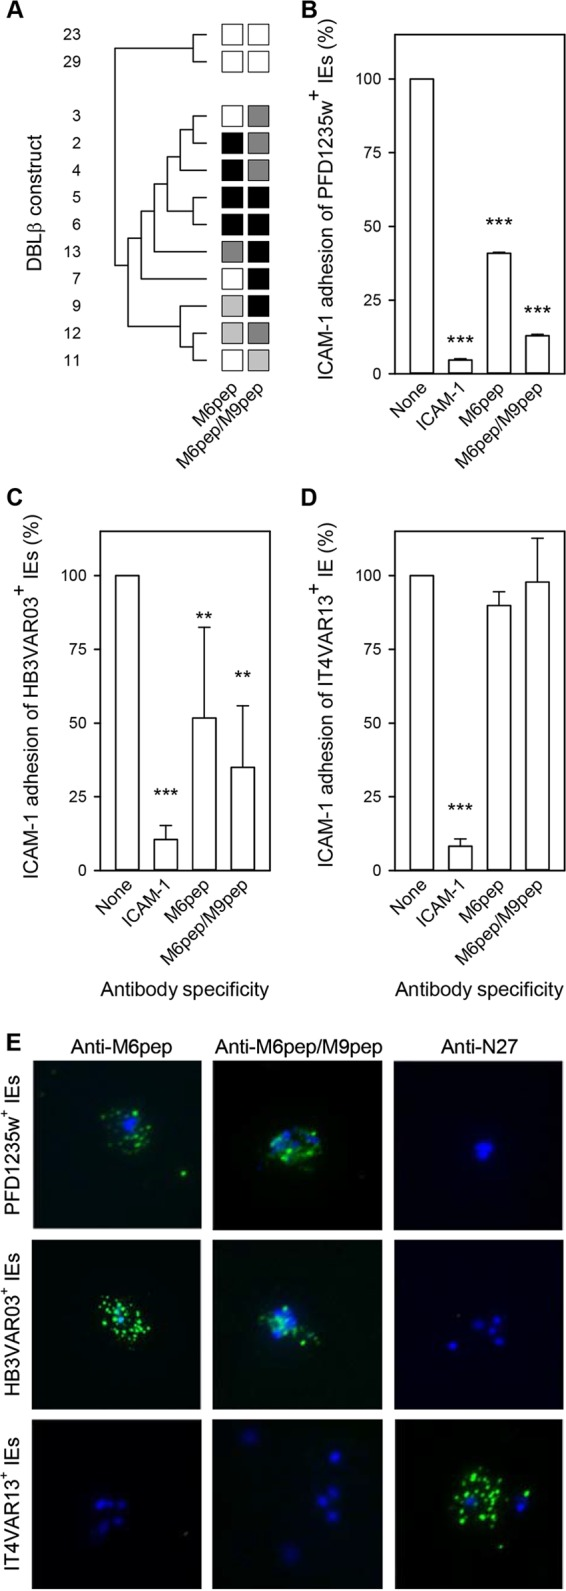 Ability of rat antisera to the ICAM-1-binding motif in DBLβ_motif domains to inhibit binding of recombinant DBLβ domains to ICAM-1. (A) Antisera from rats immunized with M6pep or with both M6pep and M9pep tested against recombinant DBLβ_motif domains (M2 to M7, M9, and M11 to M13) and DBLβ_nonmotif domains (N27 and N33). Shading, DBLβ domain numbers, and antiserum specificities are as described in the legend to Fig. 3B . (B to D) Inhibition by the same antisera of ICAM-1-specific adhesion of PFD1235w-positive IEs (B), HB3VAR03-positive IEs (C), and IT4VAR13-positive IEs (D) under physiologic shear stress. The statistical significance of the reductions is indicated as described in the legend to Fig. 4 . Three independent experiments were done (with three technical replicates in each). Fewer than 0.25 IEs/mm 2 bound to uncoated channels were observed. (E) Immunofluorescence of representative IEs with surface expression of PFD1235w (top row), HB3VAR03 (center row), and IT4VAR13 (bottom row) and labeled by sera from rats immunized with M6pep only (left column) or with both M6pep and M9pep (center column), or by a rat antiserum to N27 (right column). See Table S2 in the supplemental material for raw data.